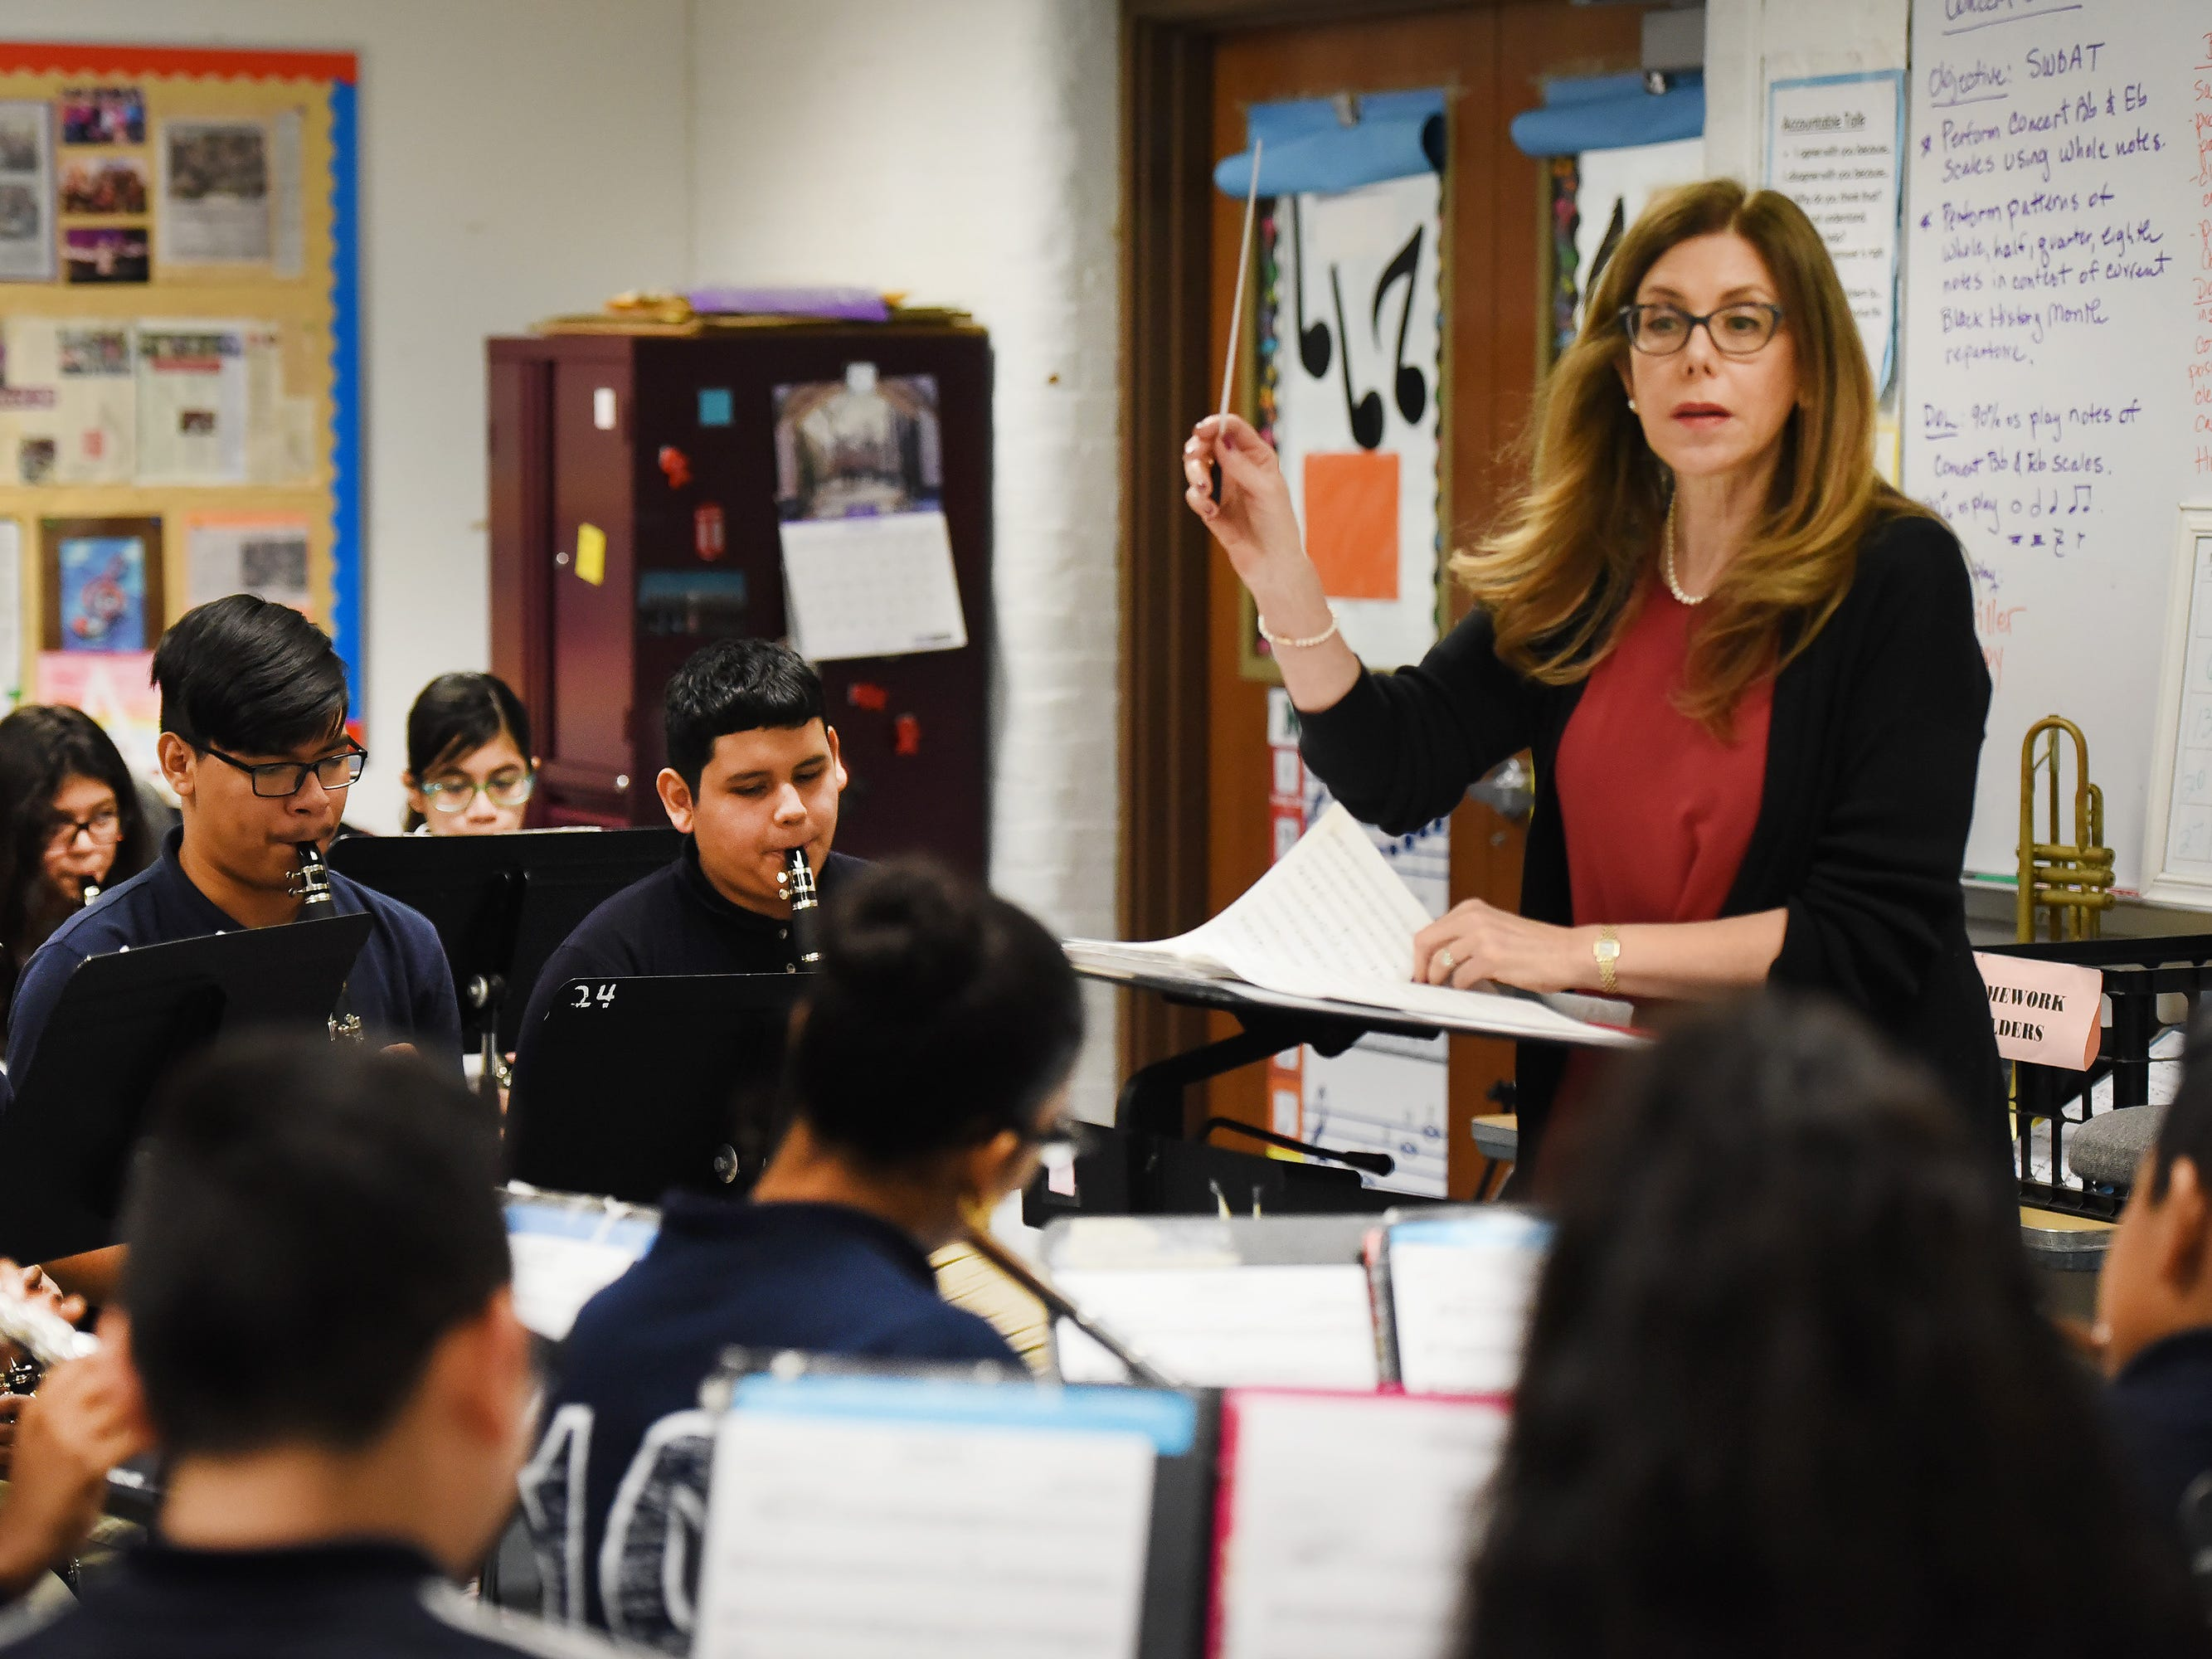 Band Director Nancy Horowitz leads the students during a music class at School #24 in Paterson on 01/09/19.